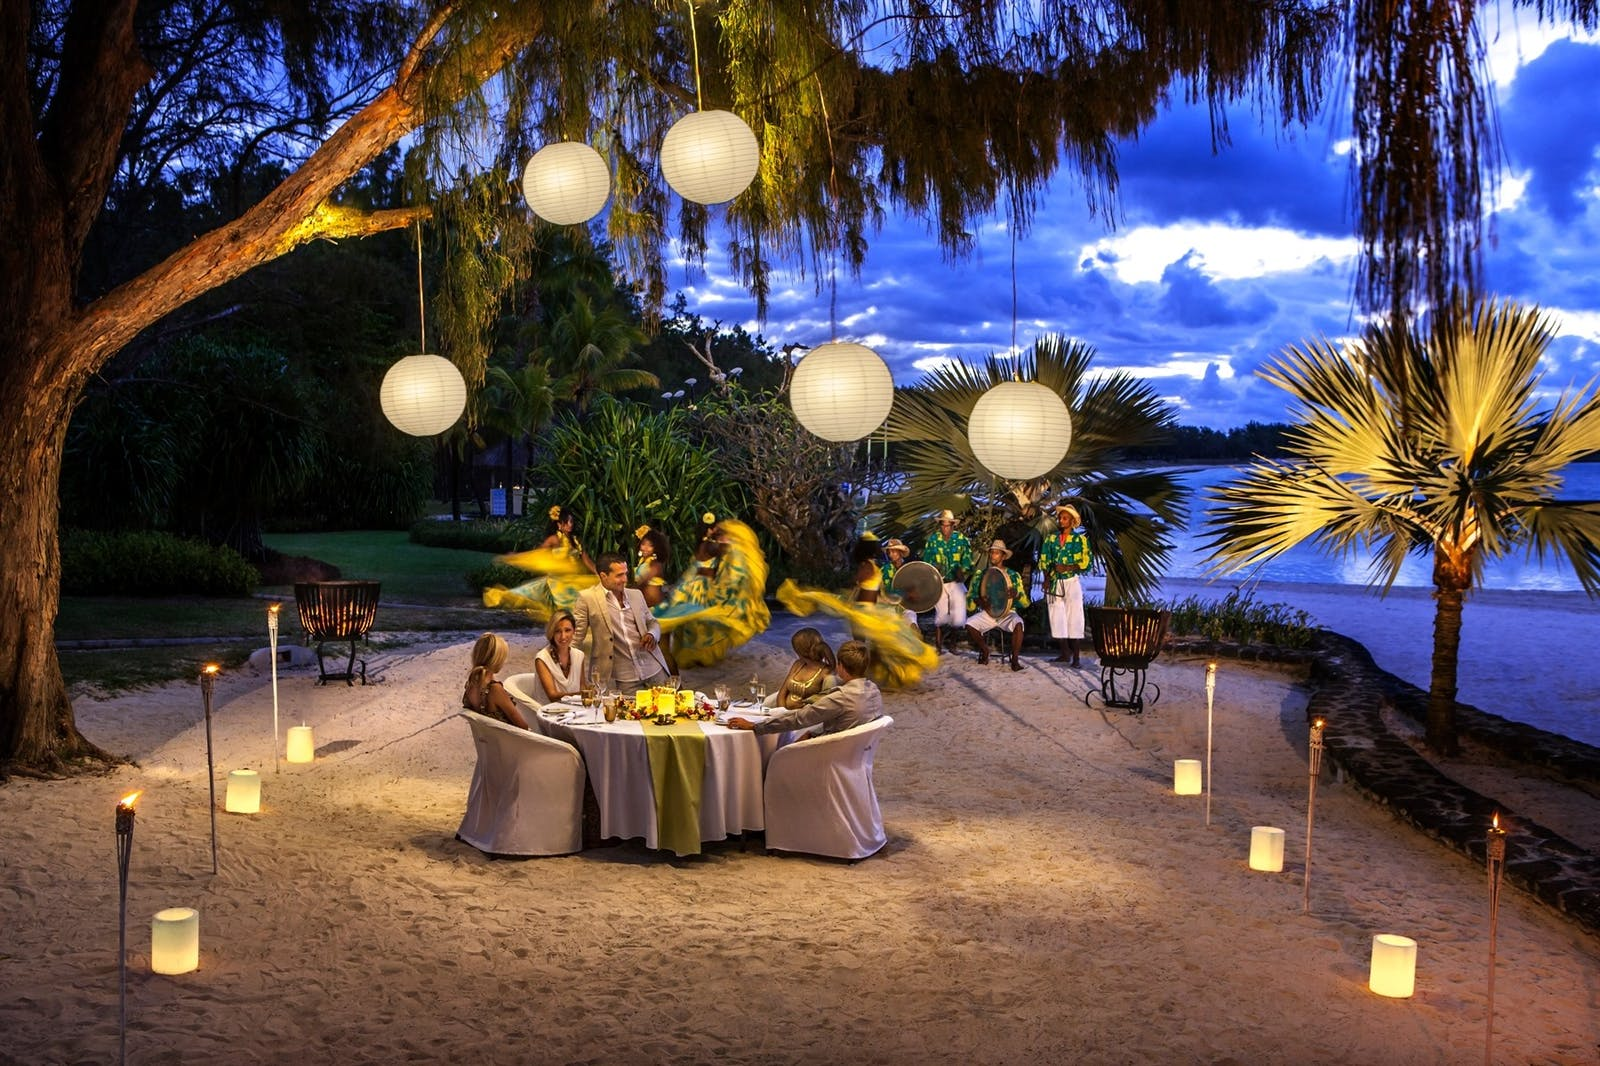 Beach Dinner at The Residence Mauritius, Indian Ocean